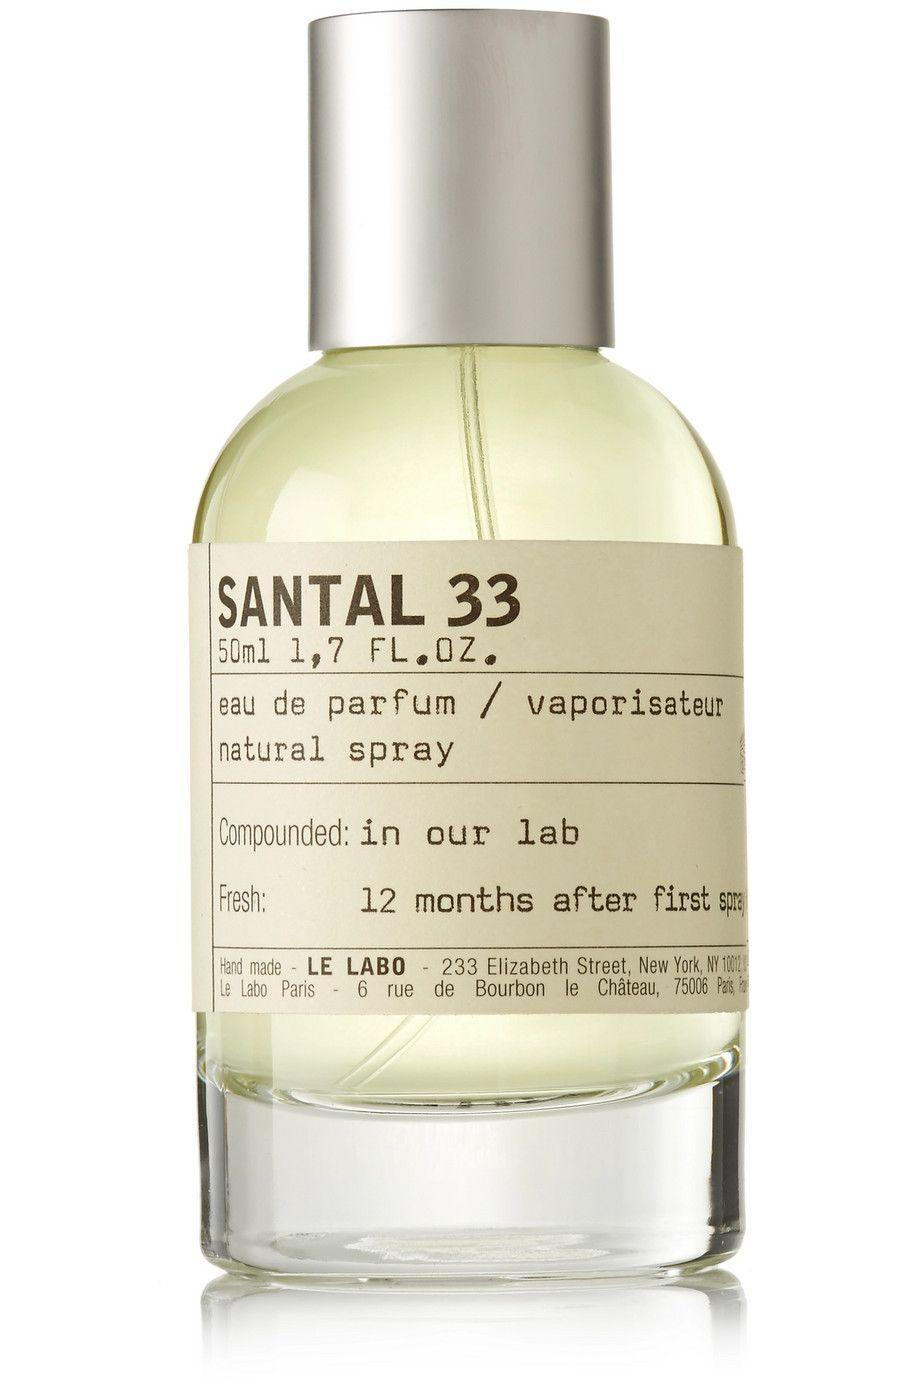 "<p>Cool-girl fragrance brand, Le Labo, are known for creating recognisable scents that become cult classics. Santal 33 is everyone's favourite, the woody amber scent is lightened with notes of violet and cardamom. </p><p> <a class=""link rapid-noclick-resp"" href=""https://go.redirectingat.com?id=127X1599956&url=https%3A%2F%2Fwww.net-a-porter.com%2Fgb%2Fen%2Fproduct%2F958395%2FLe_Labo%2Fsantal-33-eau-de-parfum-50ml&sref=http%3A%2F%2Fwww.cosmopolitan.com%2Fuk%2Fbeauty-hair%2Fg23448484%2Fnet-a-porter-beauty-products%2F"" rel=""nofollow noopener"" target=""_blank"" data-ylk=""slk:buy now"">buy now</a></p>"